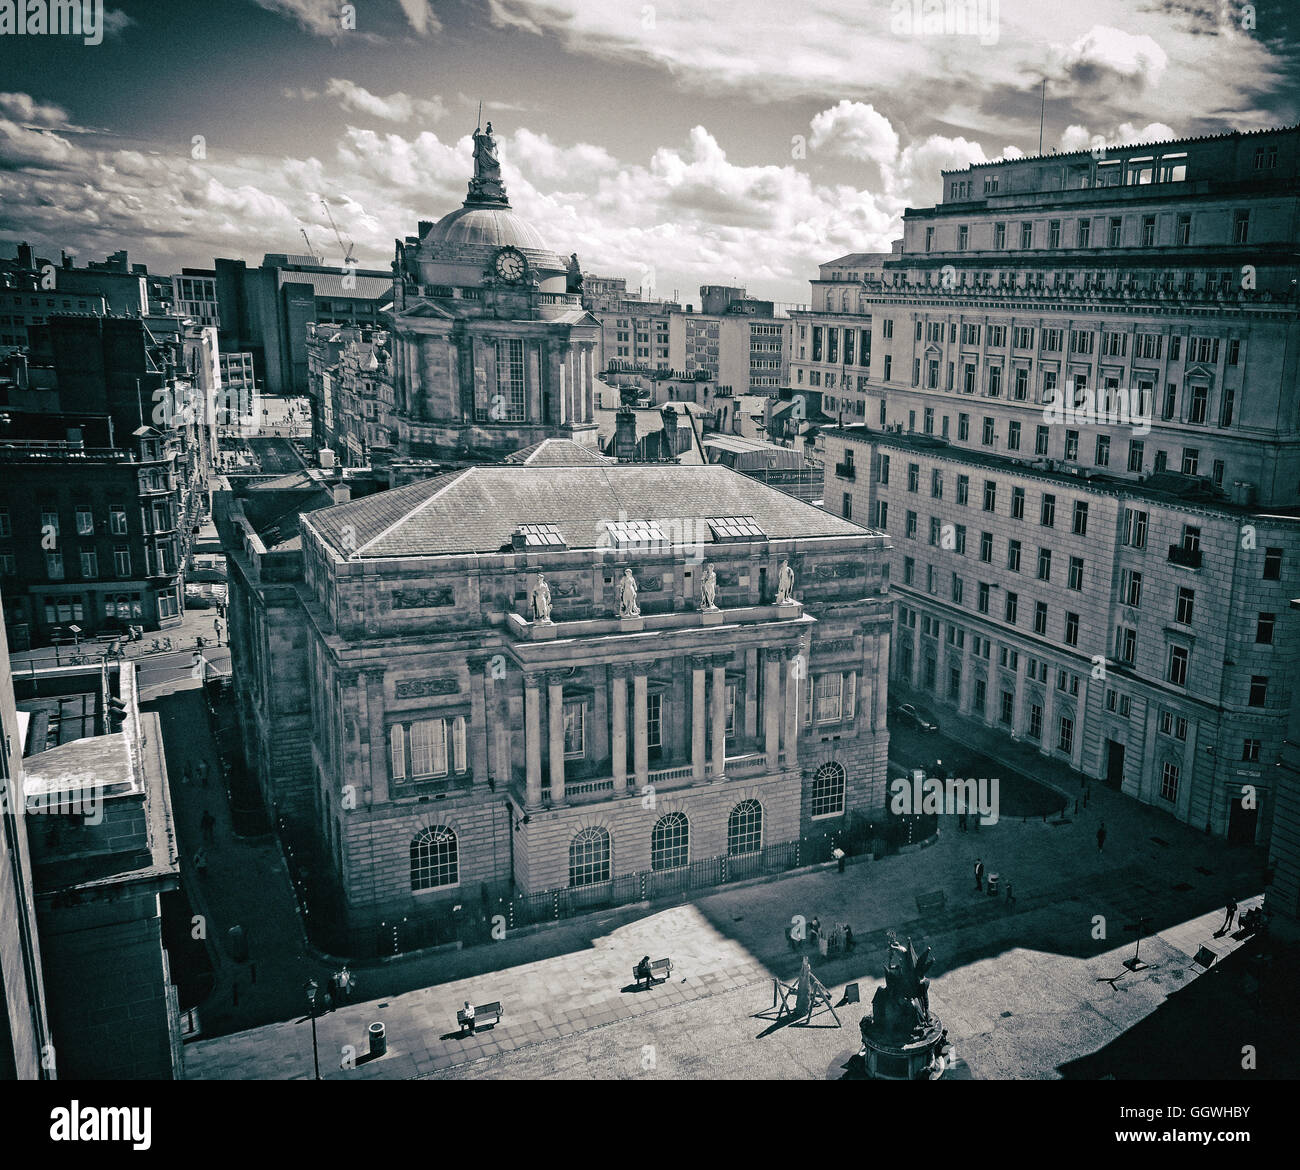 Liverpool Town Hall, Dale St,Merseyside,England,UK - Monochrome - Stock Image